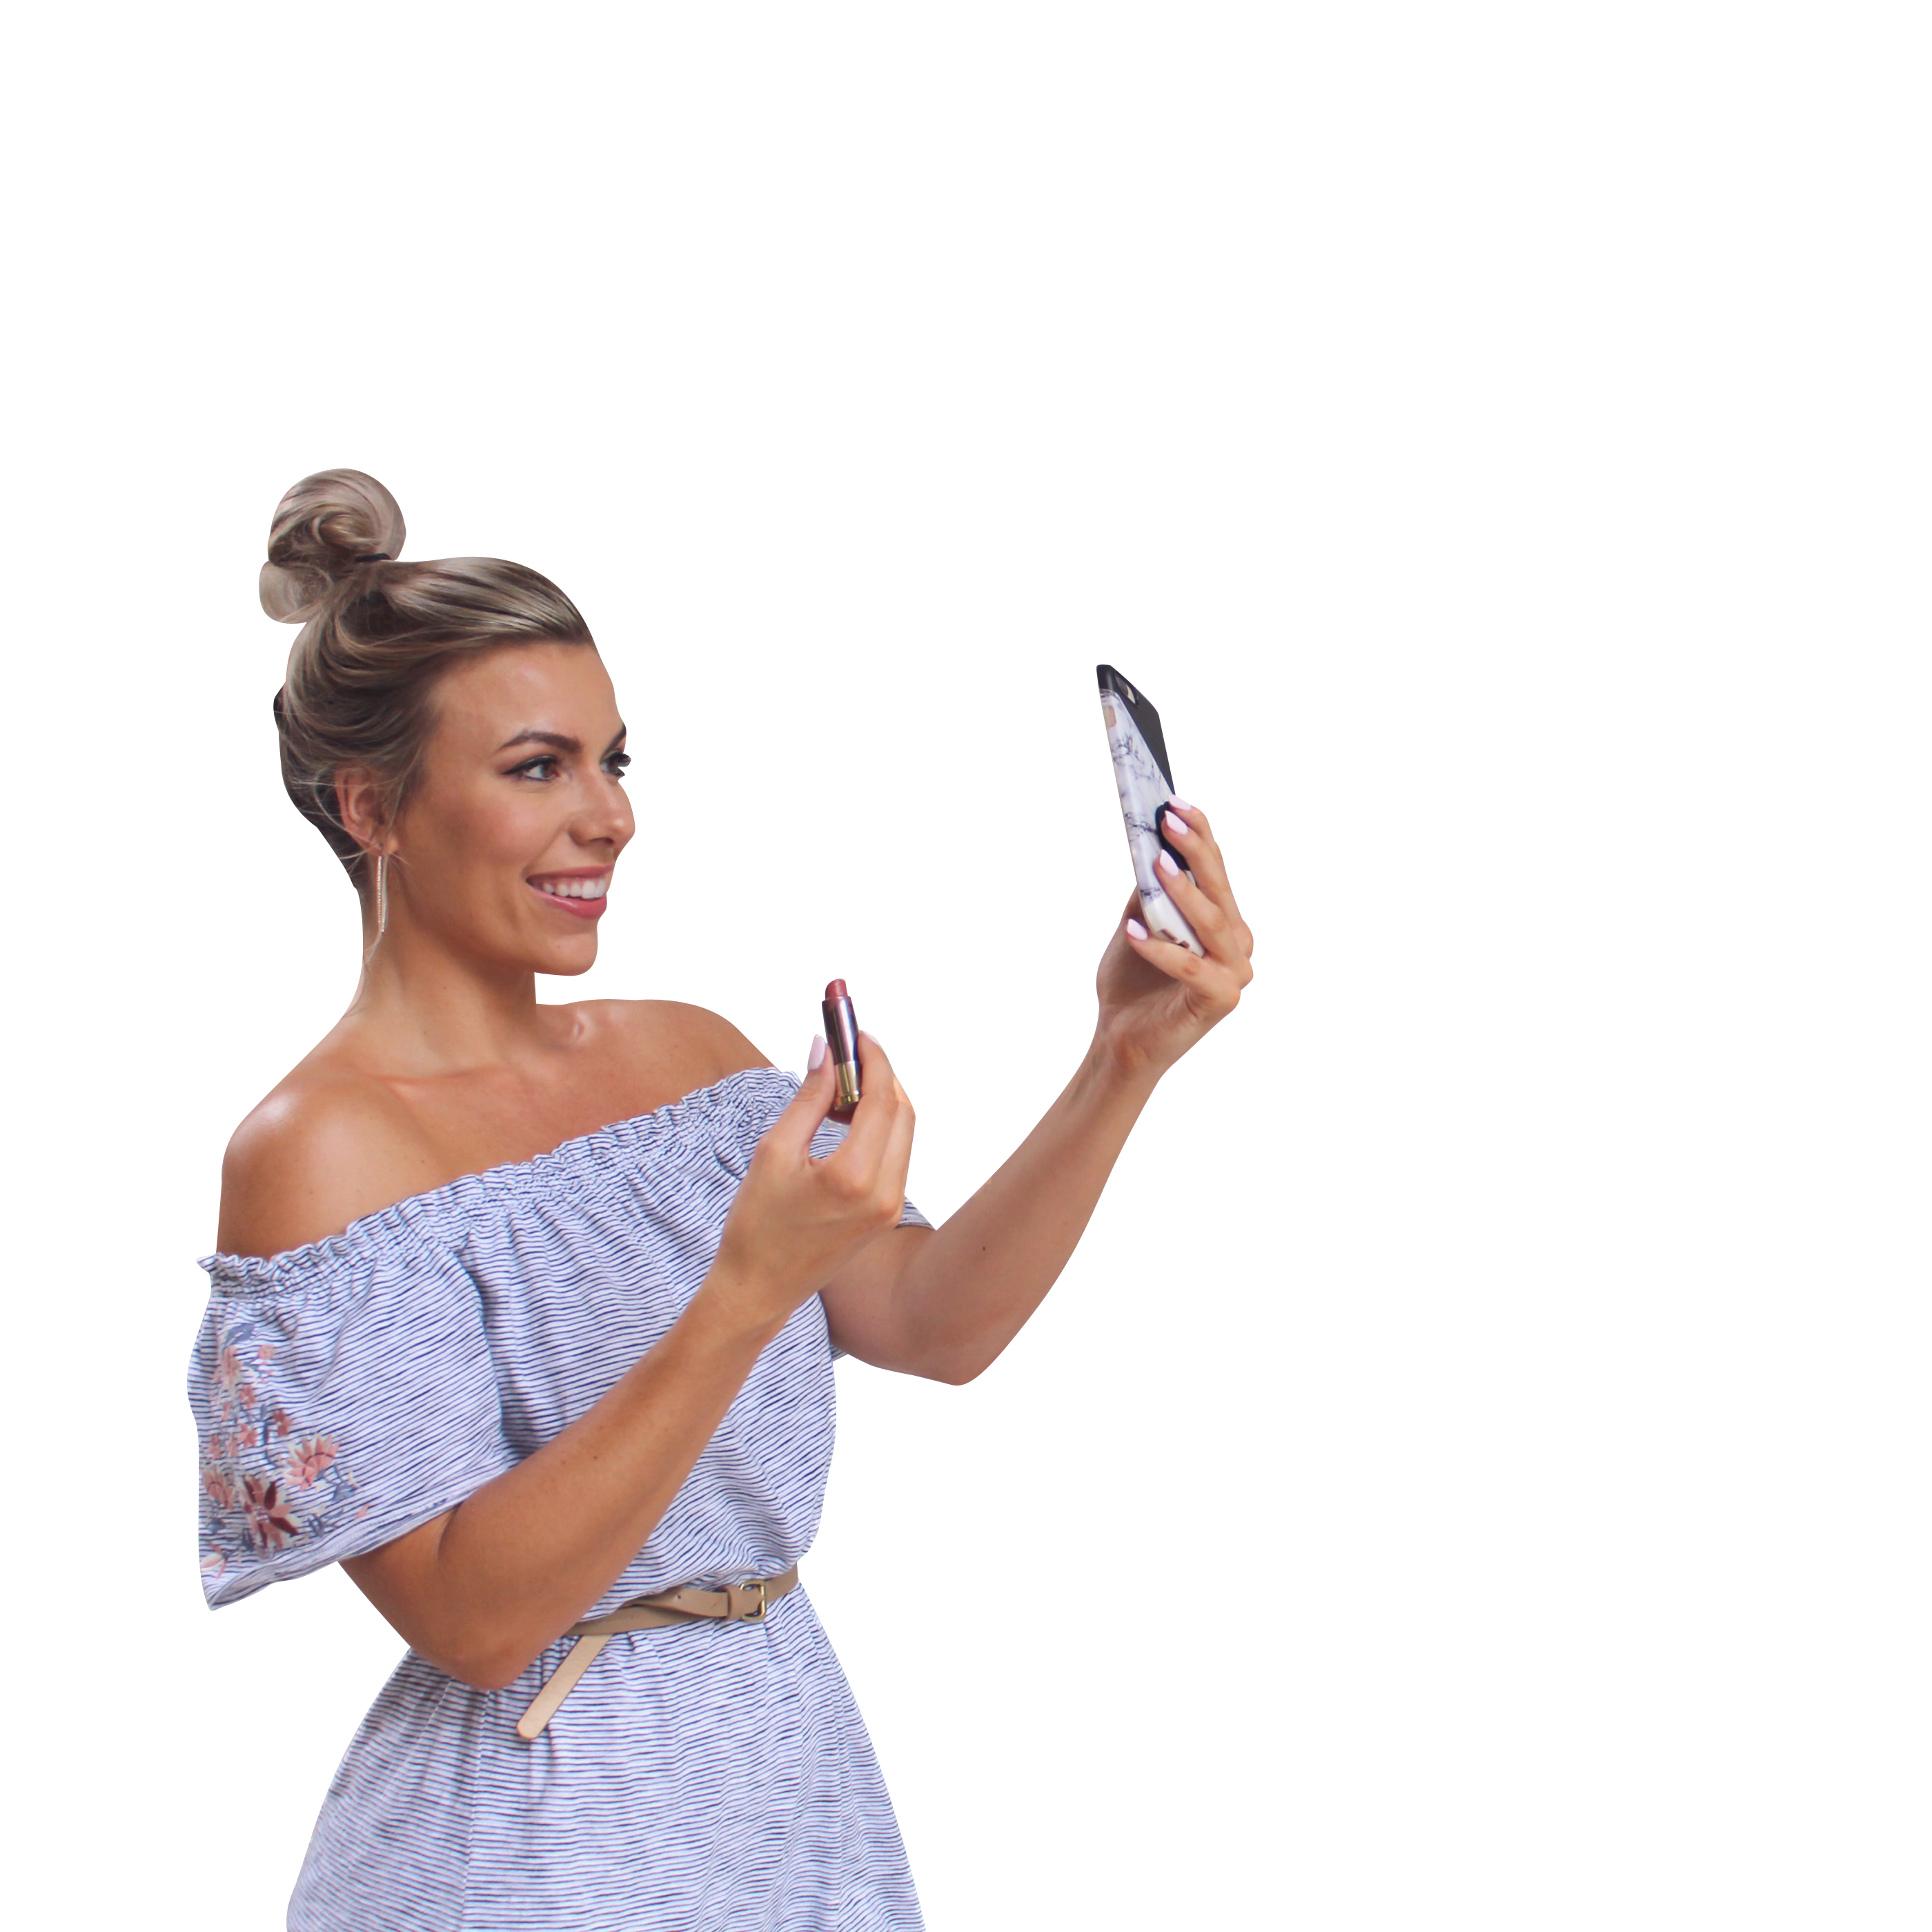 Woman doing make-up through phone Transparent Background PNG